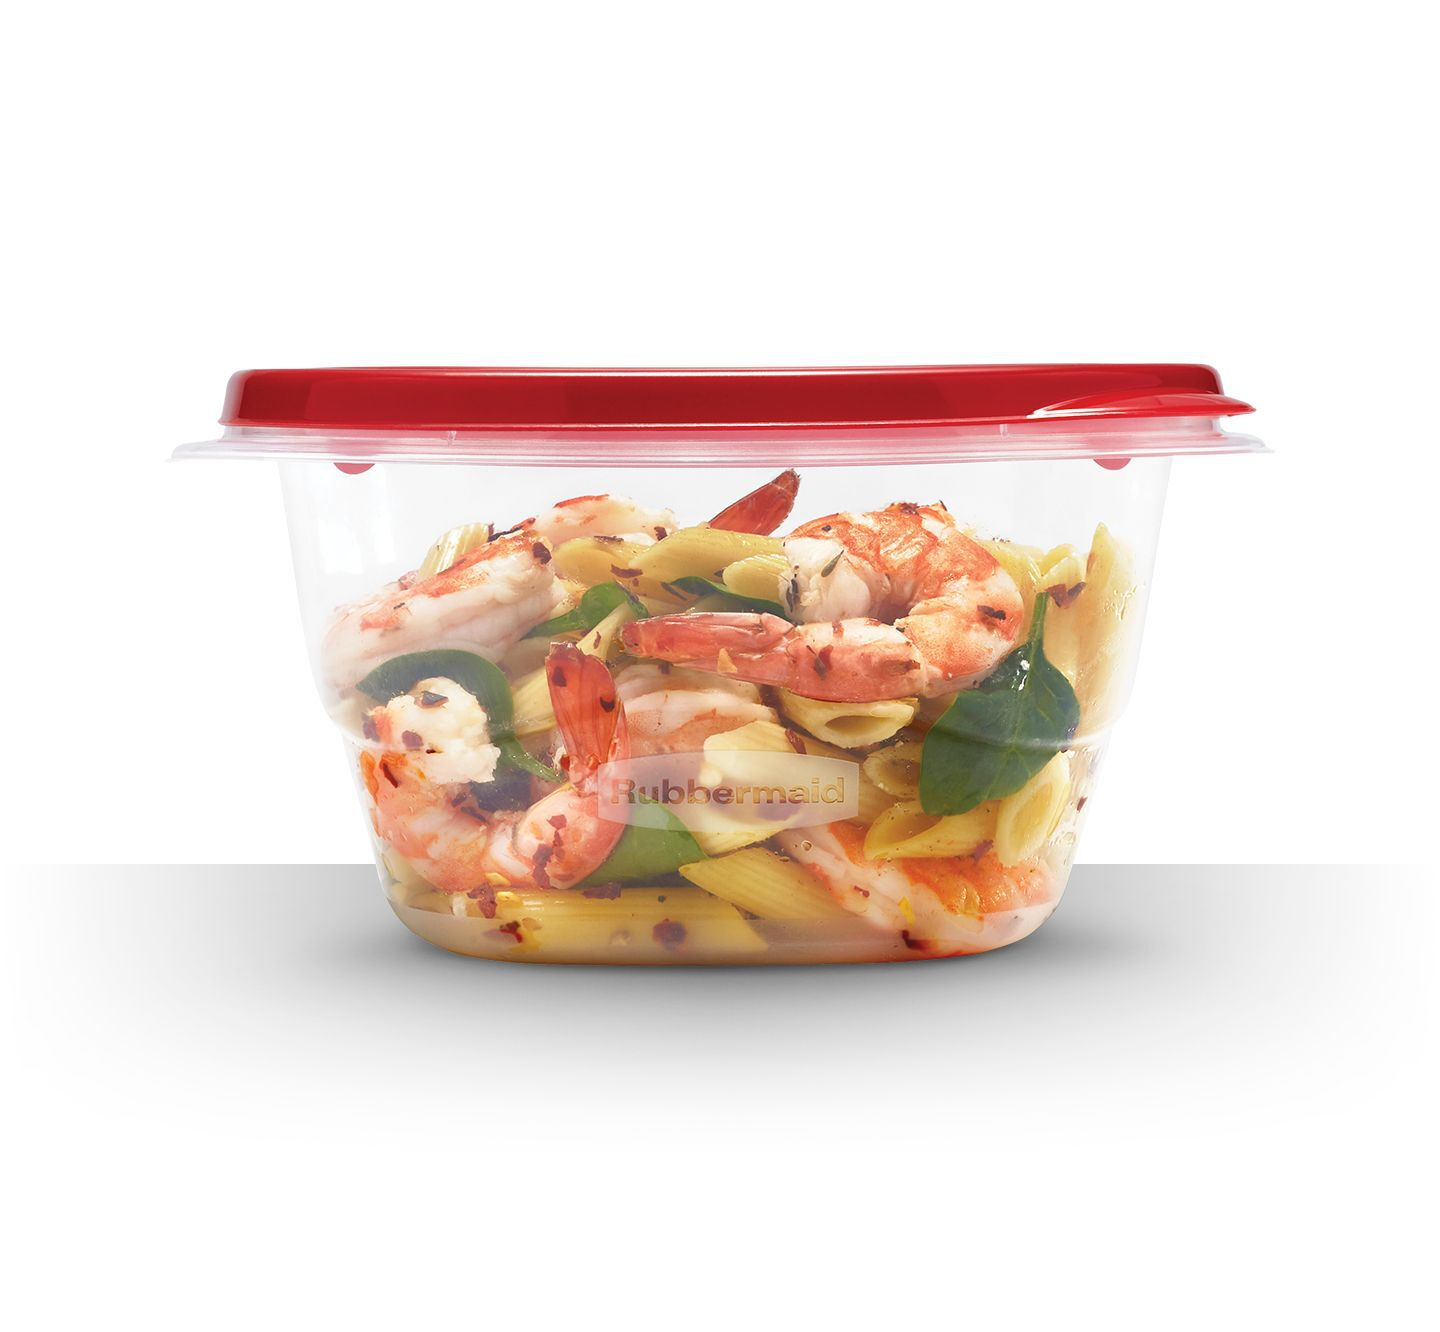 Rubbermaid TakeAlongs food storage container